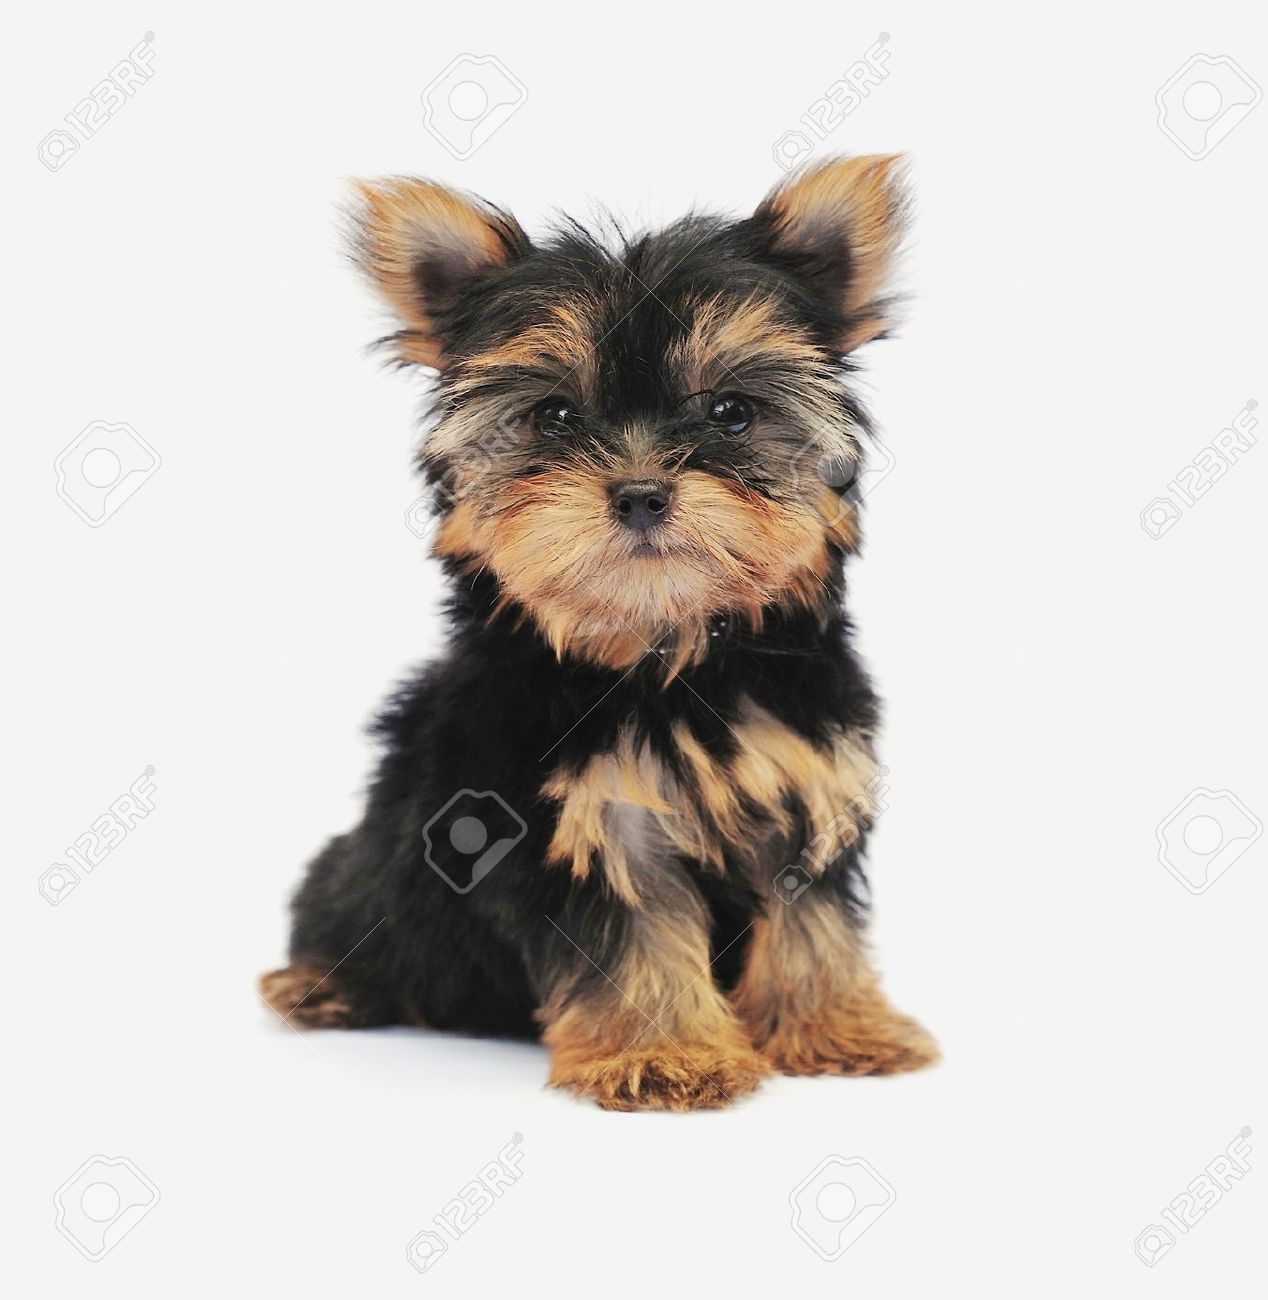 50 Very Beautiful Yorkshire Terrier Dog Photos And Pictures